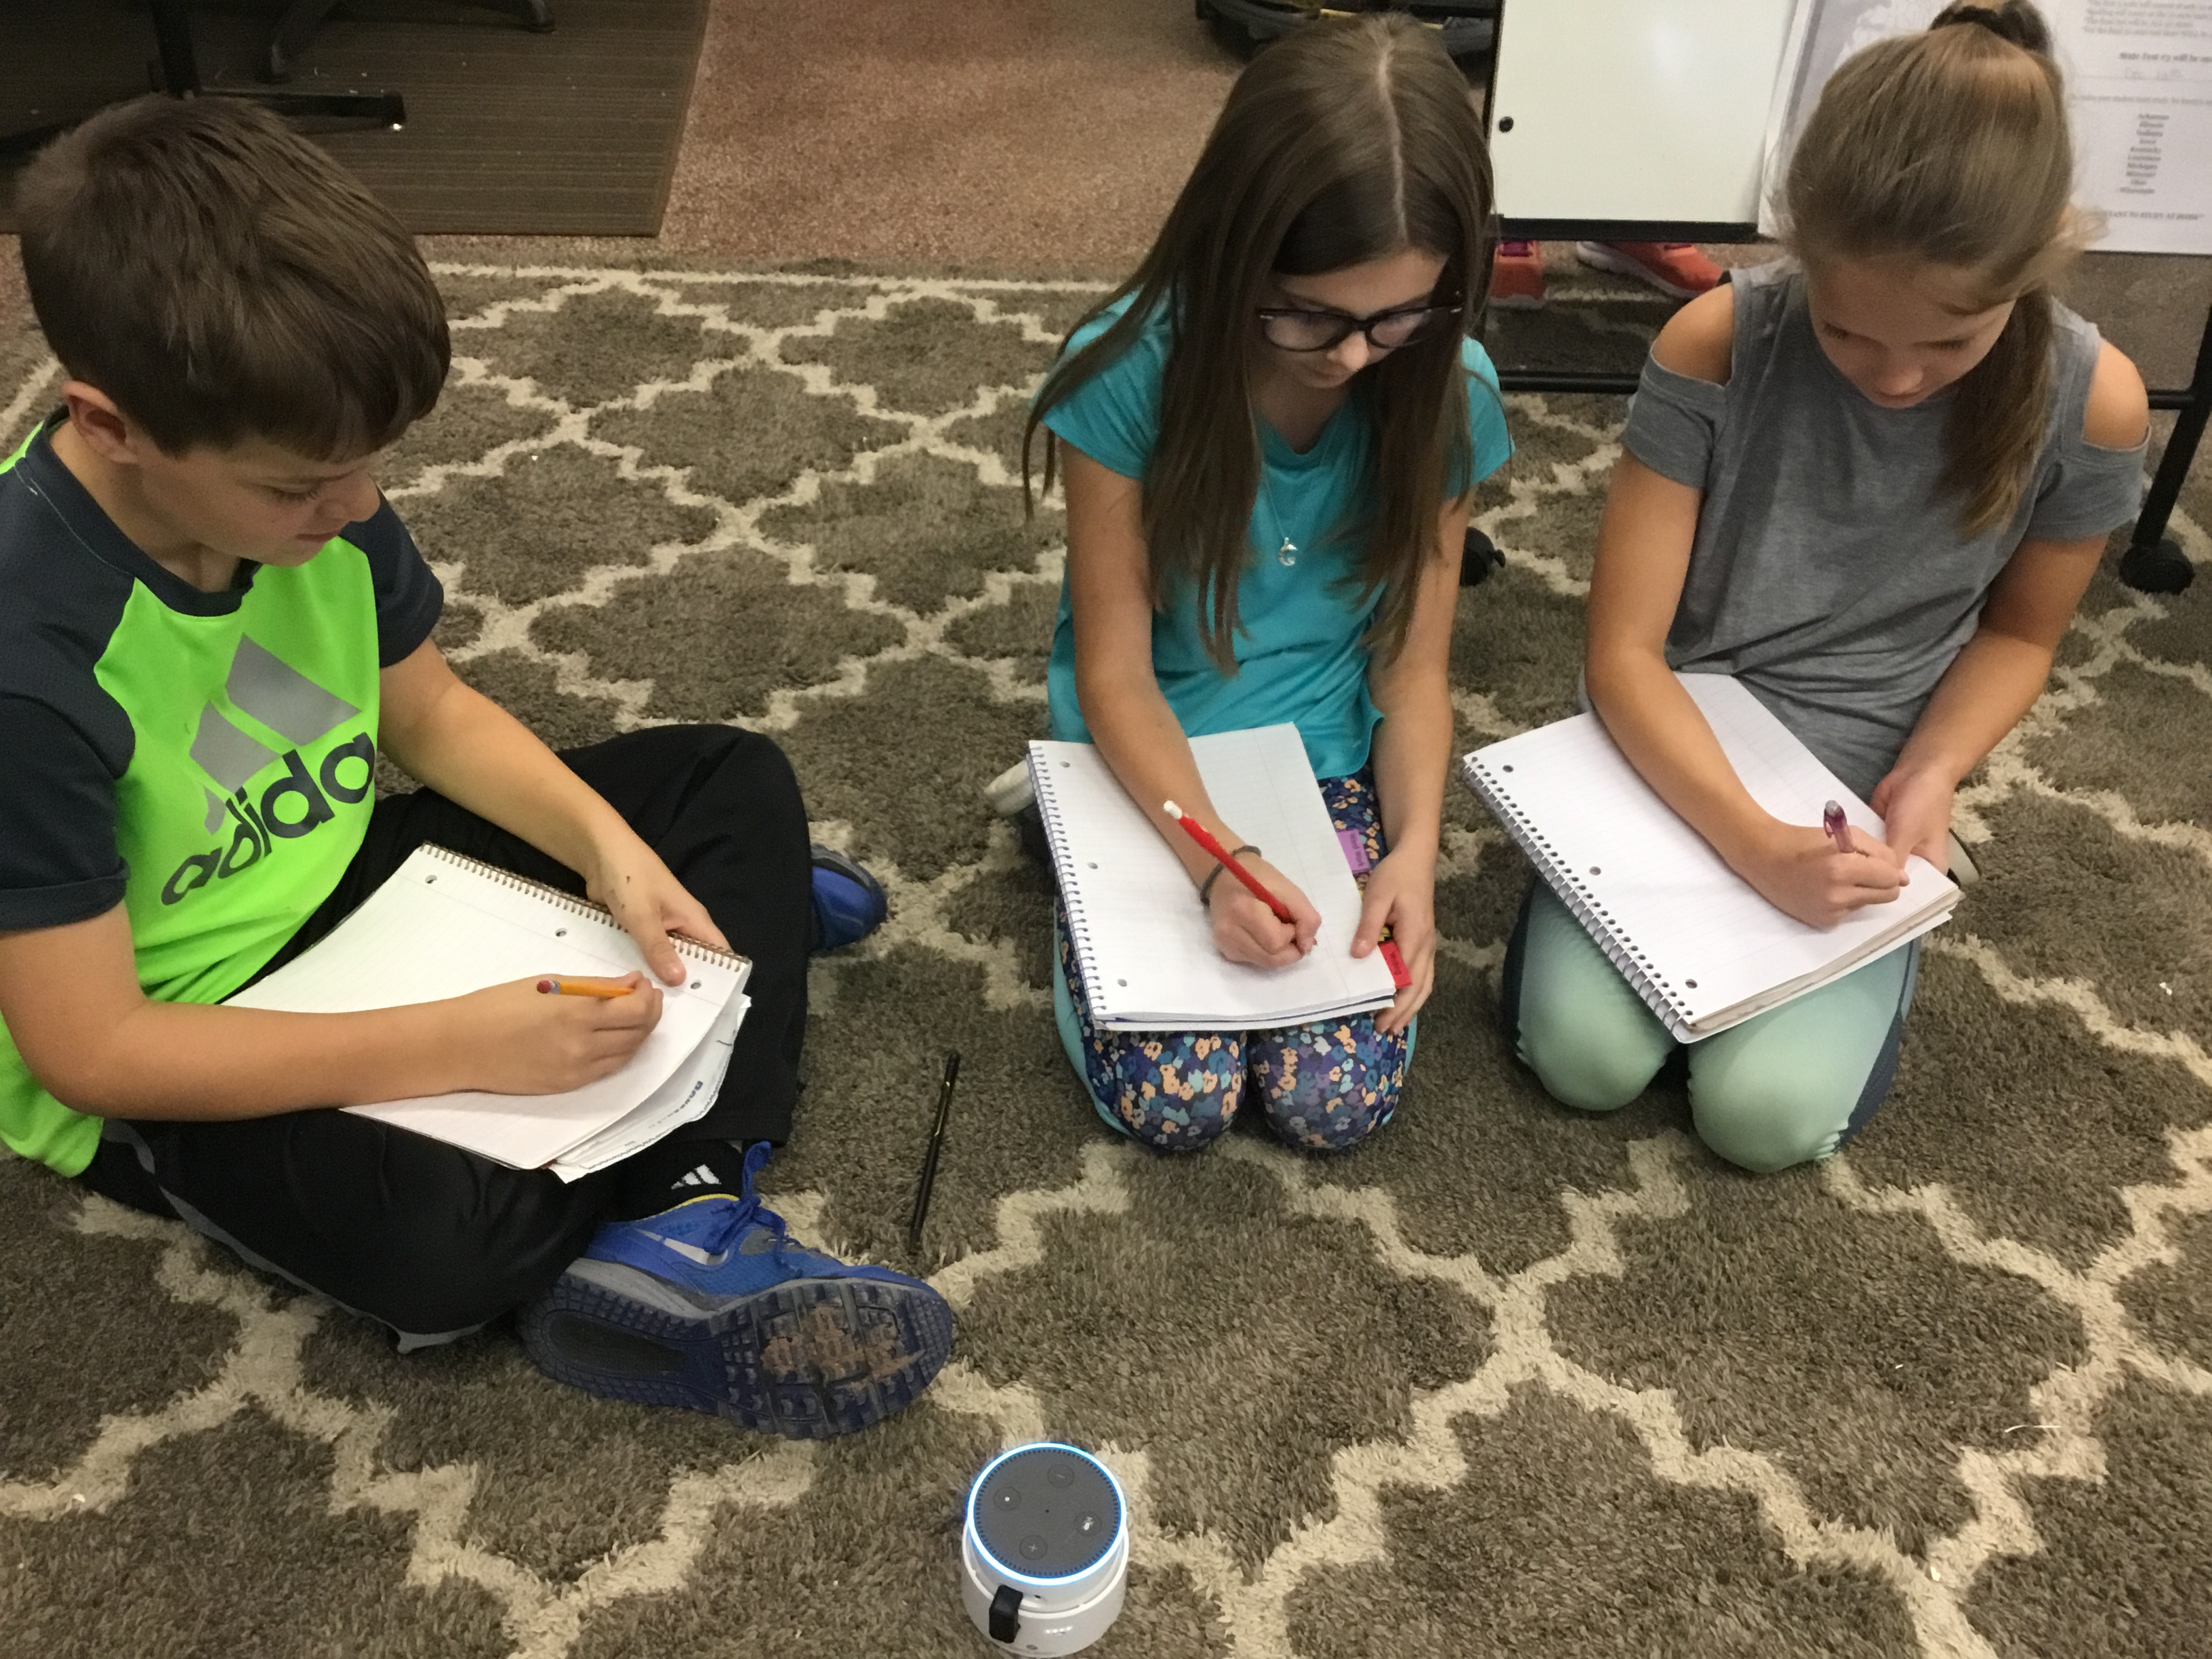 VOICE-ACTIVATED LEARNING—Students at Spring Road Elementary in Neenah, Wisconsin, listen to morning announcements on an Echo Dot. They also get writing prompts and math lessons from the device.